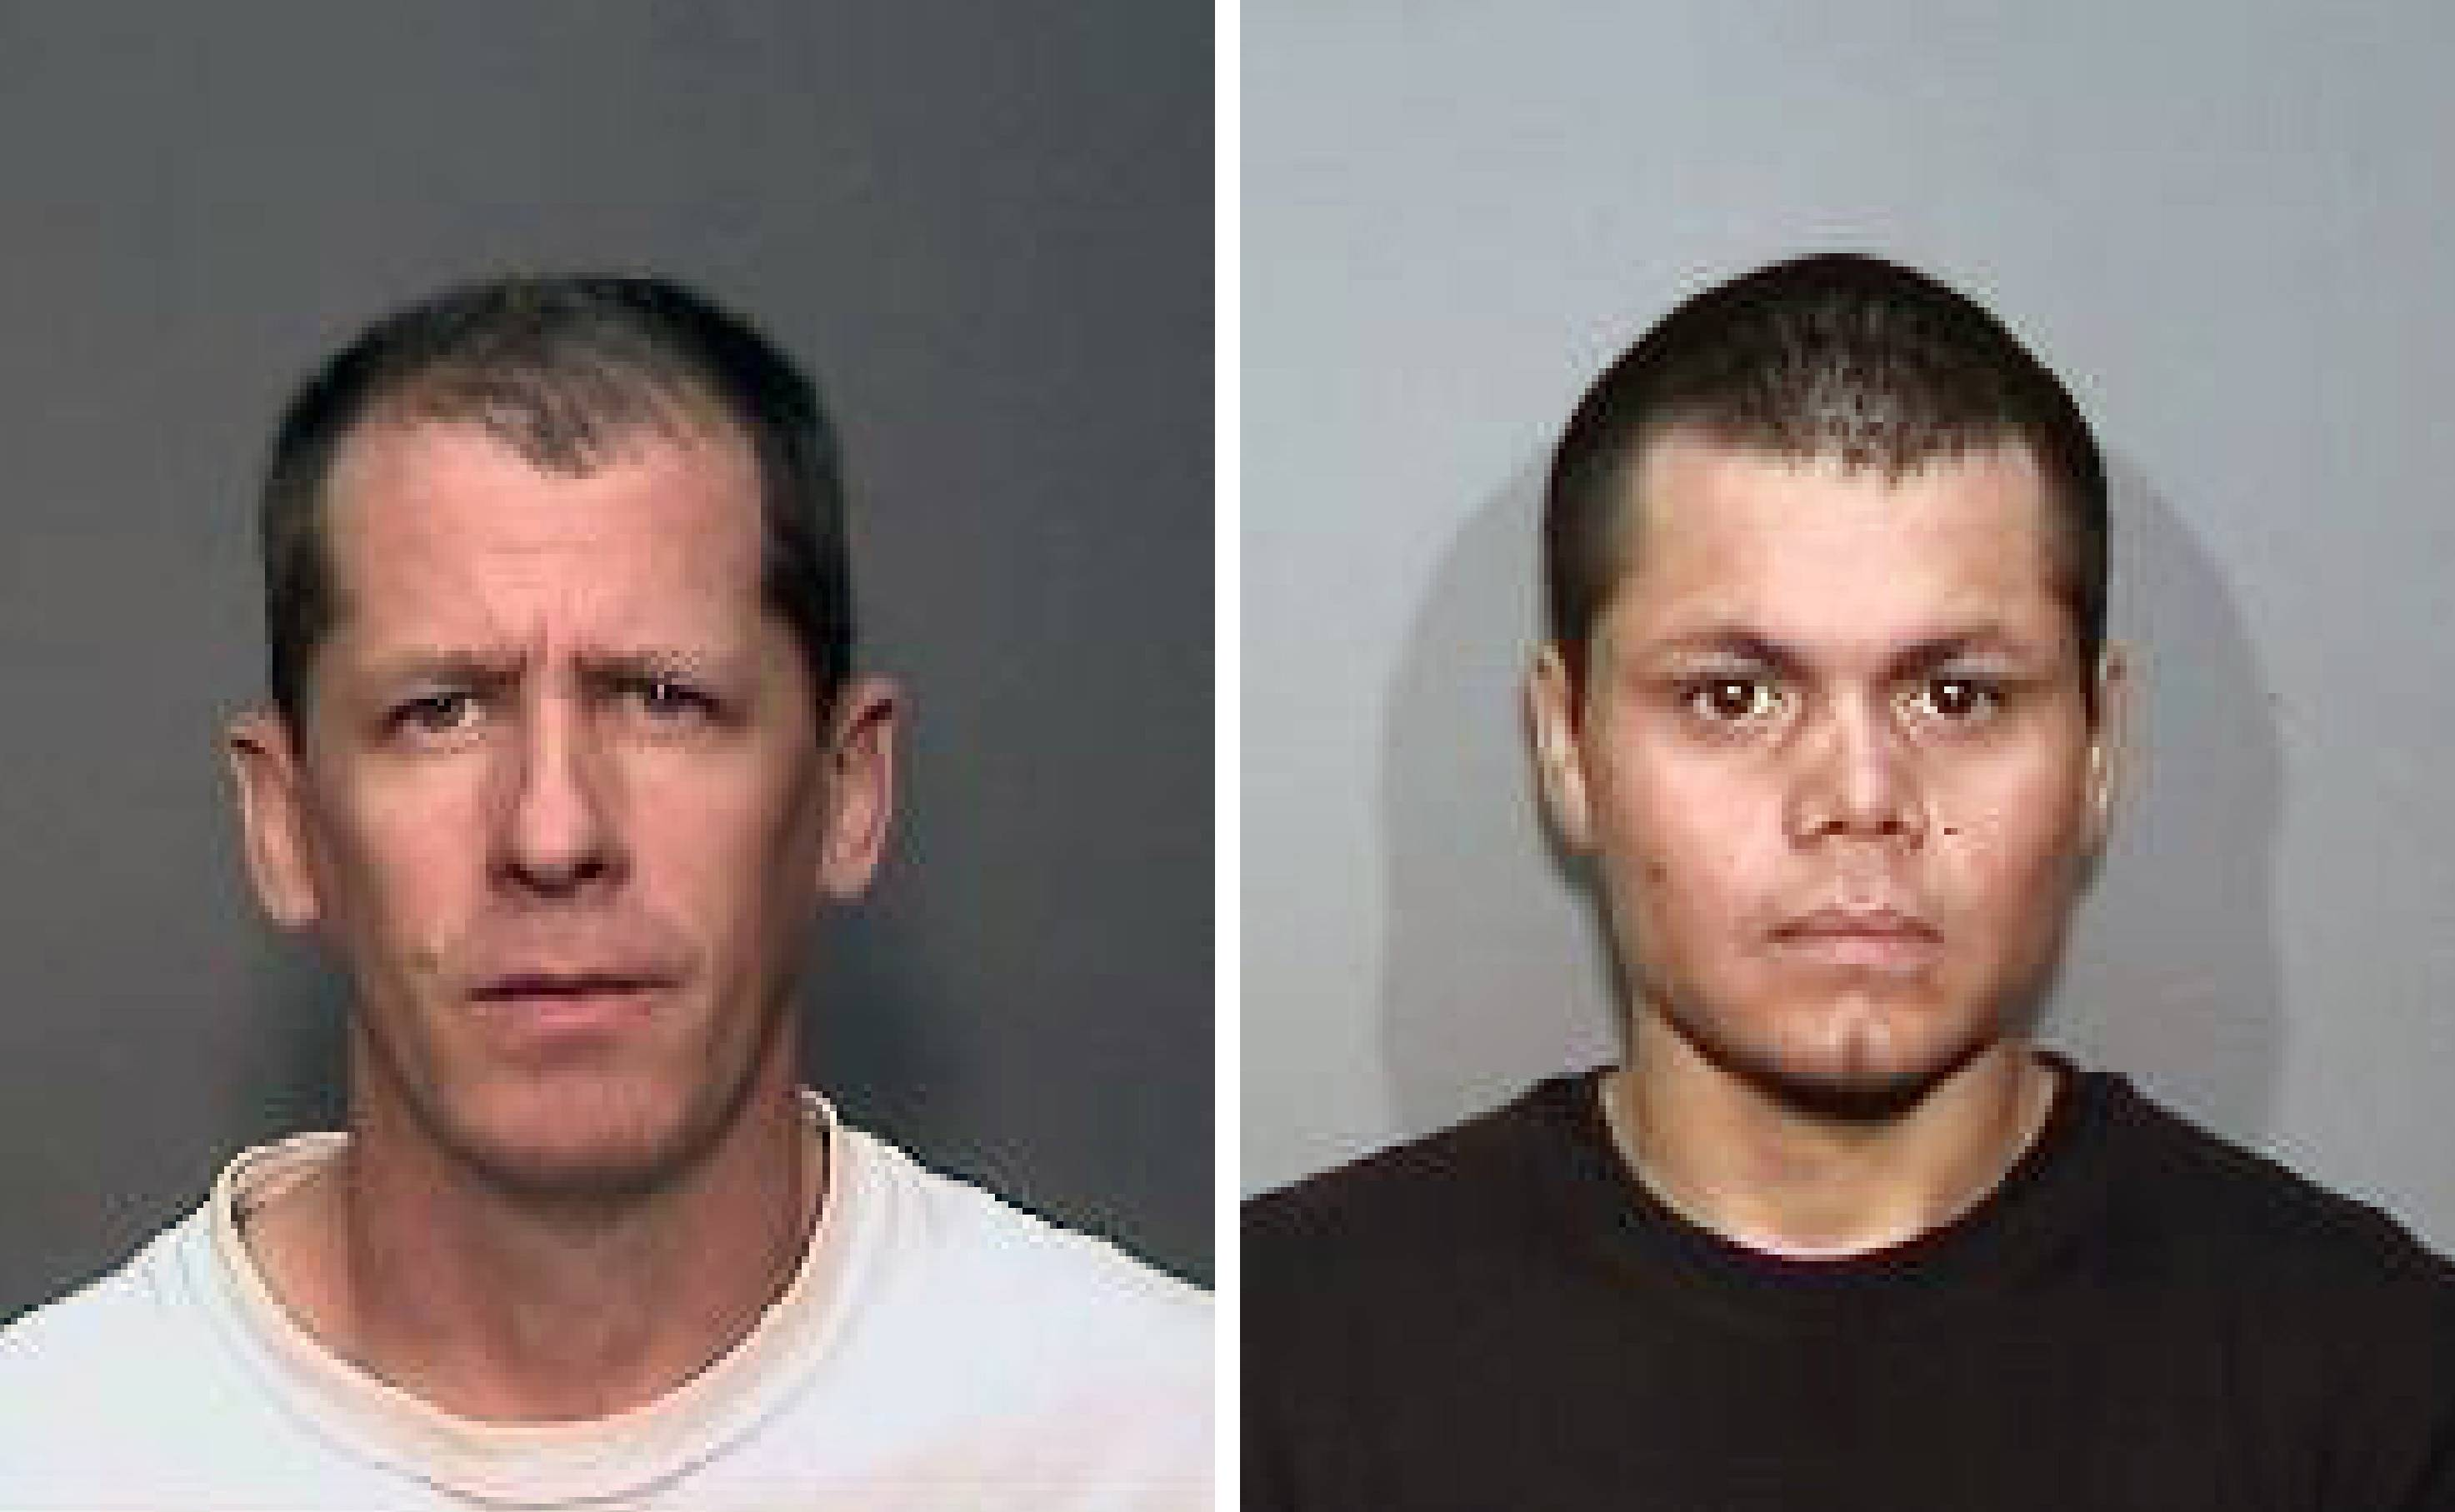 Stephen Dean Gordon, 45, left, and Franc Cano, 27, were arrested Friday on suspicion of killing four women in Orange County, Calif. Anaheim police said detectives in Santa Ana and Anaheim launched a joint investigation after the naked body of Jarrae Nykkole Estepp, 21, was found in the conveyor belt of a recycling plant last month. The probe led detectives to connect the men to her slaying, and the disappearance of three women who frequented a Santa Ana neighborhood known for drug dealing and prostitution.